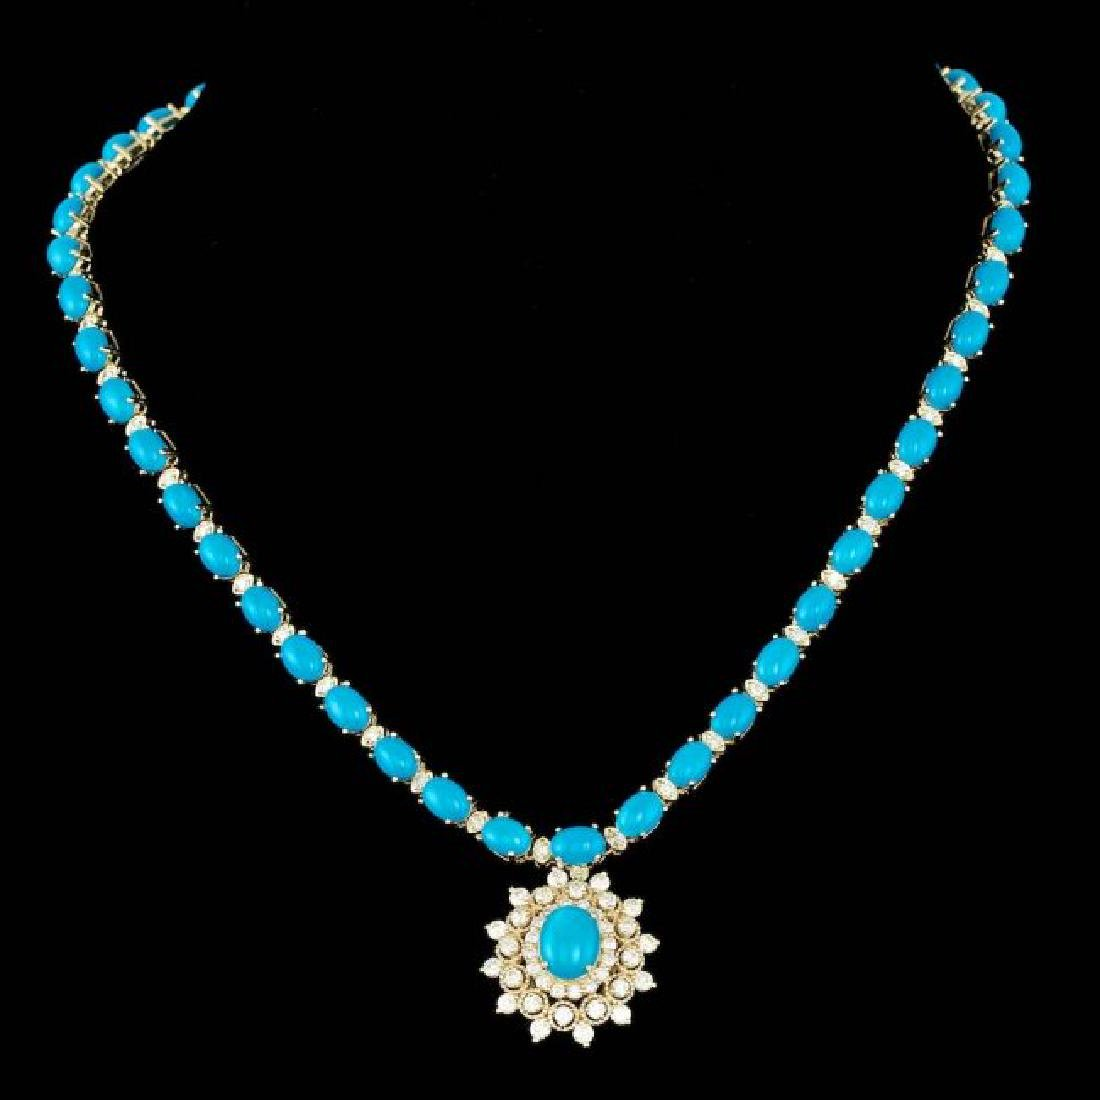 14k Gold 53.5ct Turquoise 5.20ct Diamond Necklace